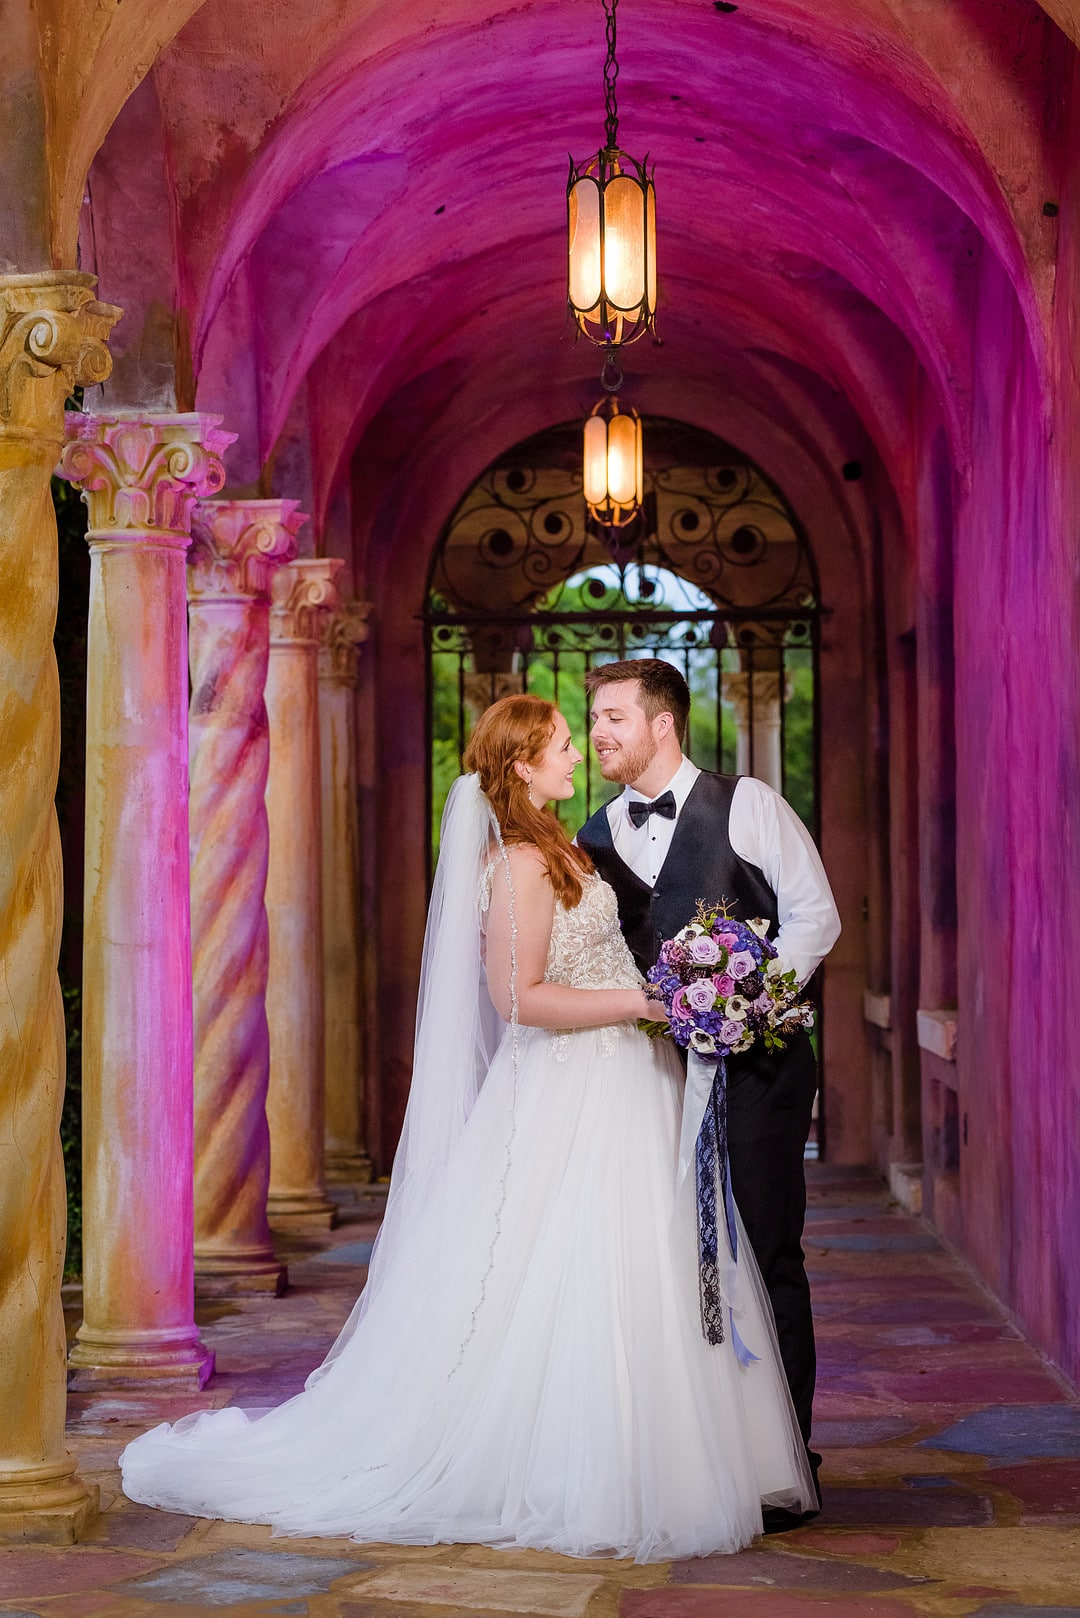 bride holding bouquet with groom missing tuxedo jacket taking wedding portrait in archway of the outdoor porch of wedding venue with bright purple uplighting